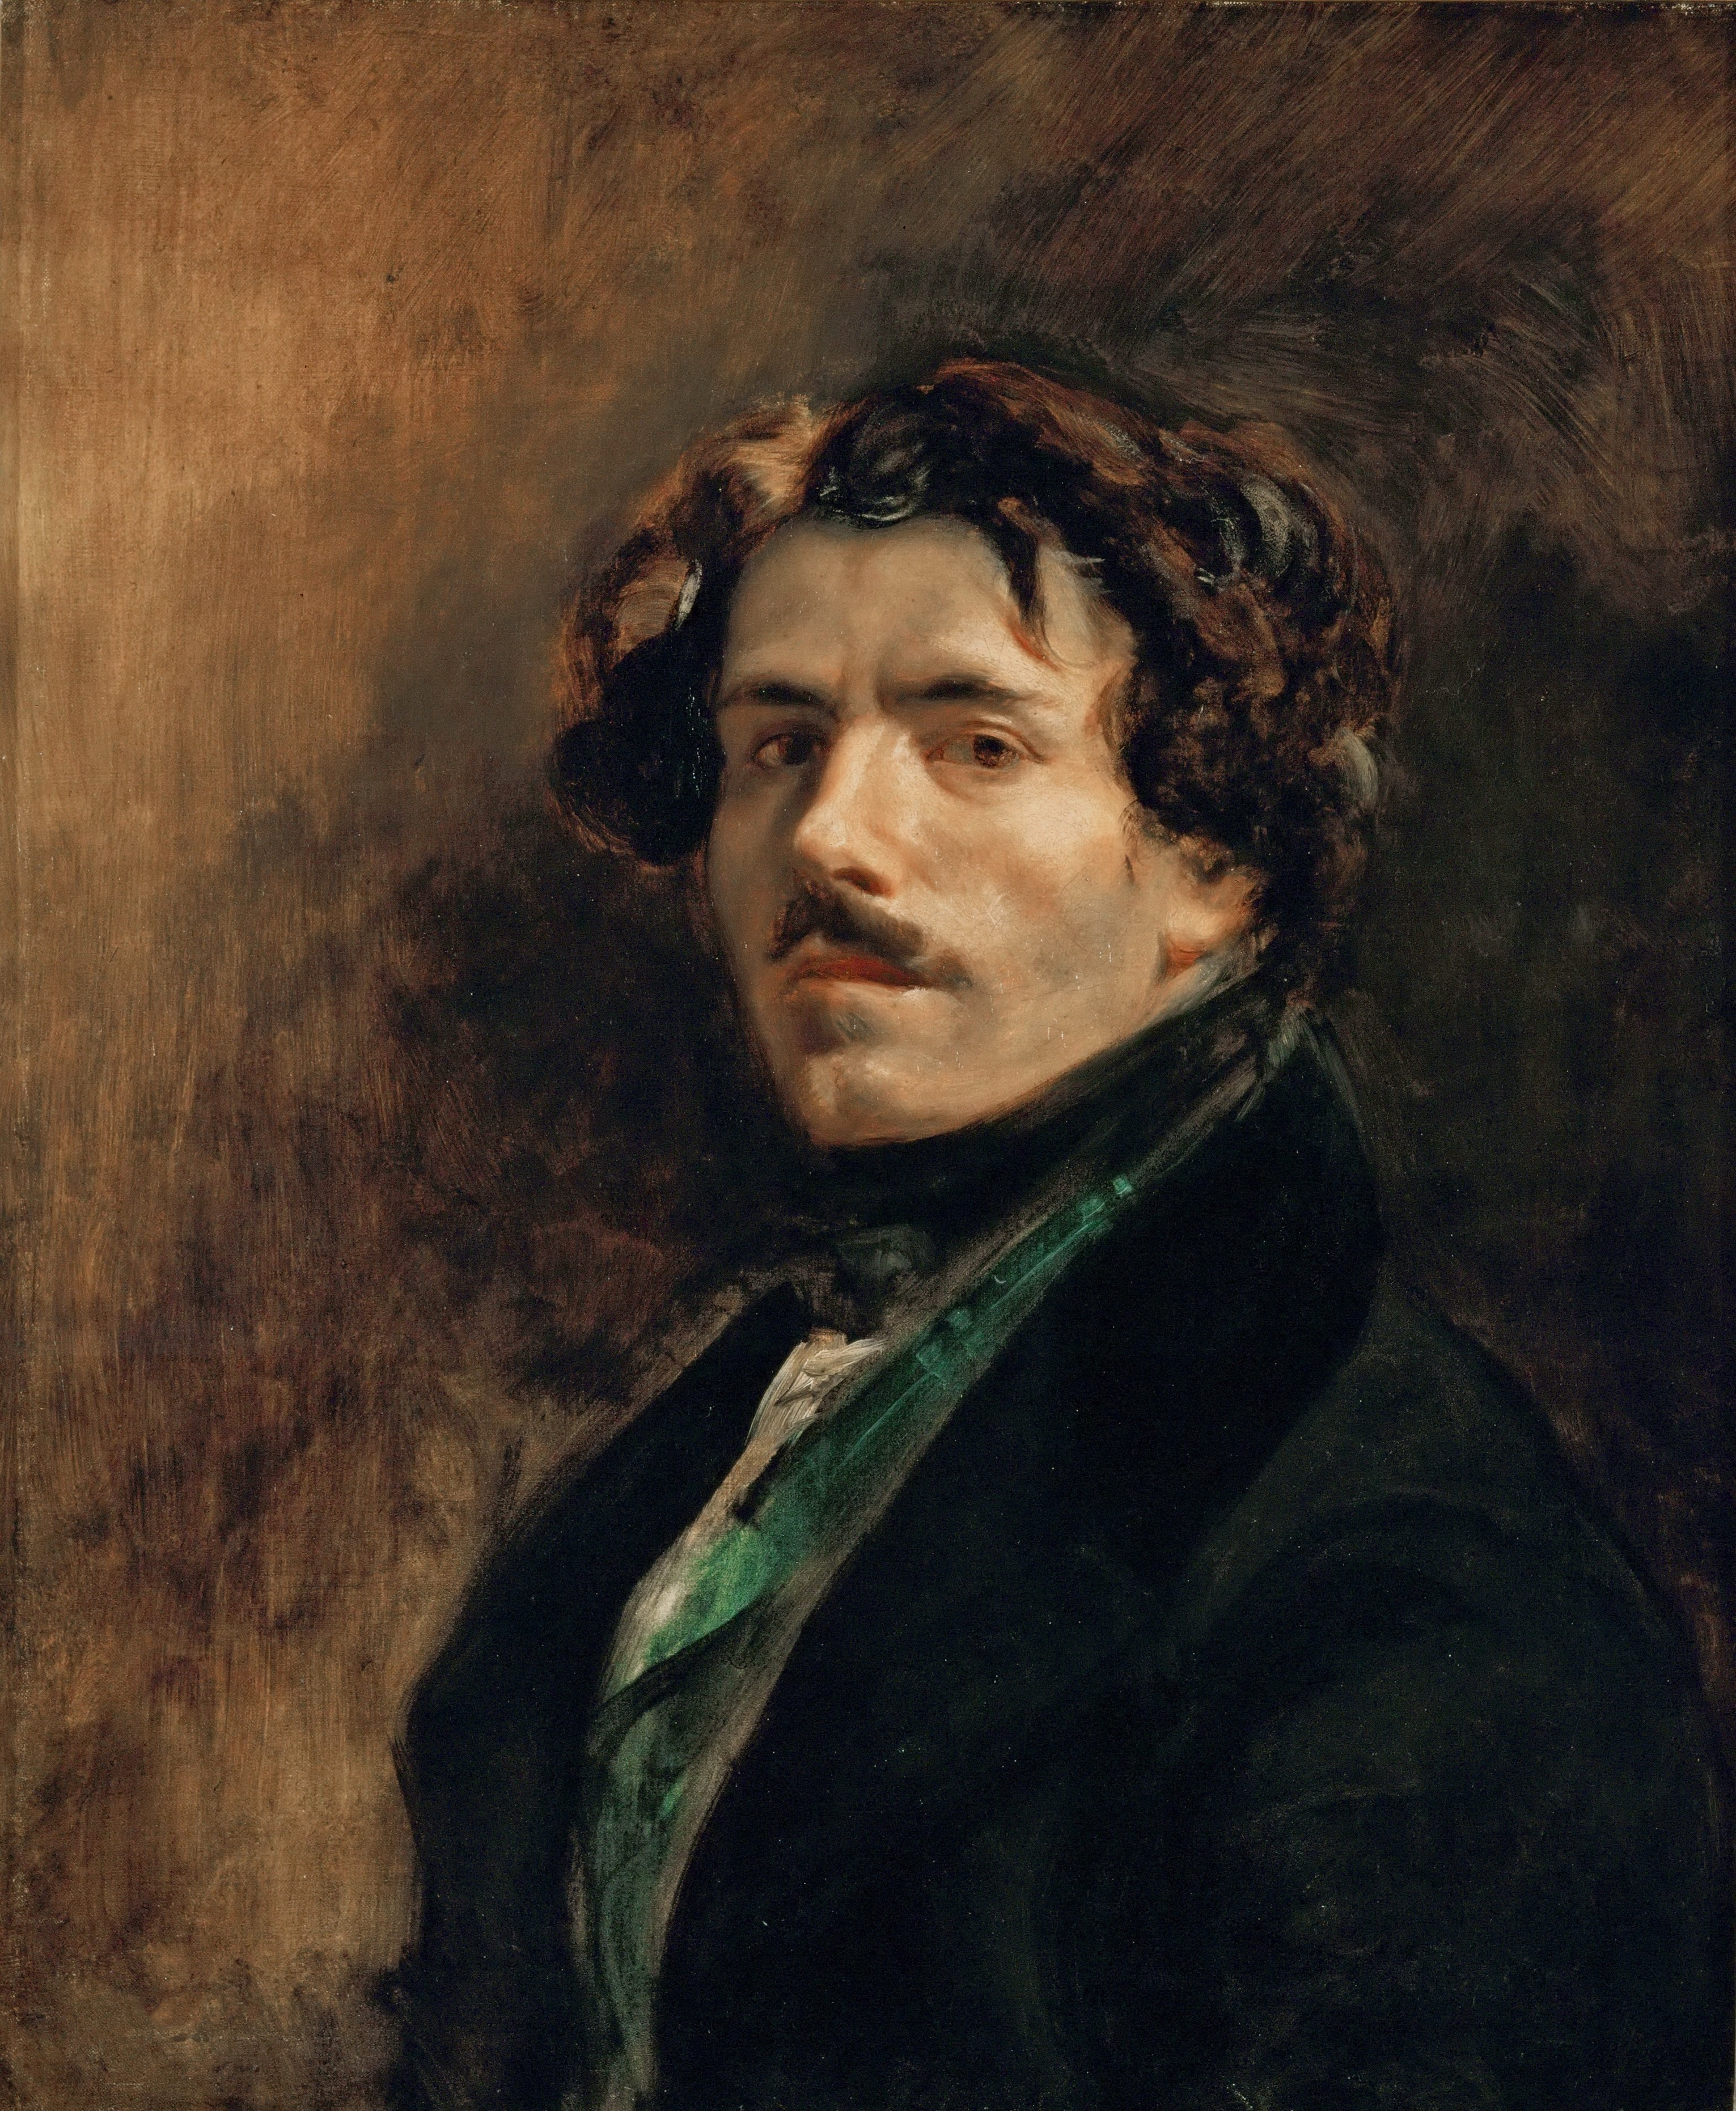 Image of Eugène Delacroix from Wikidata